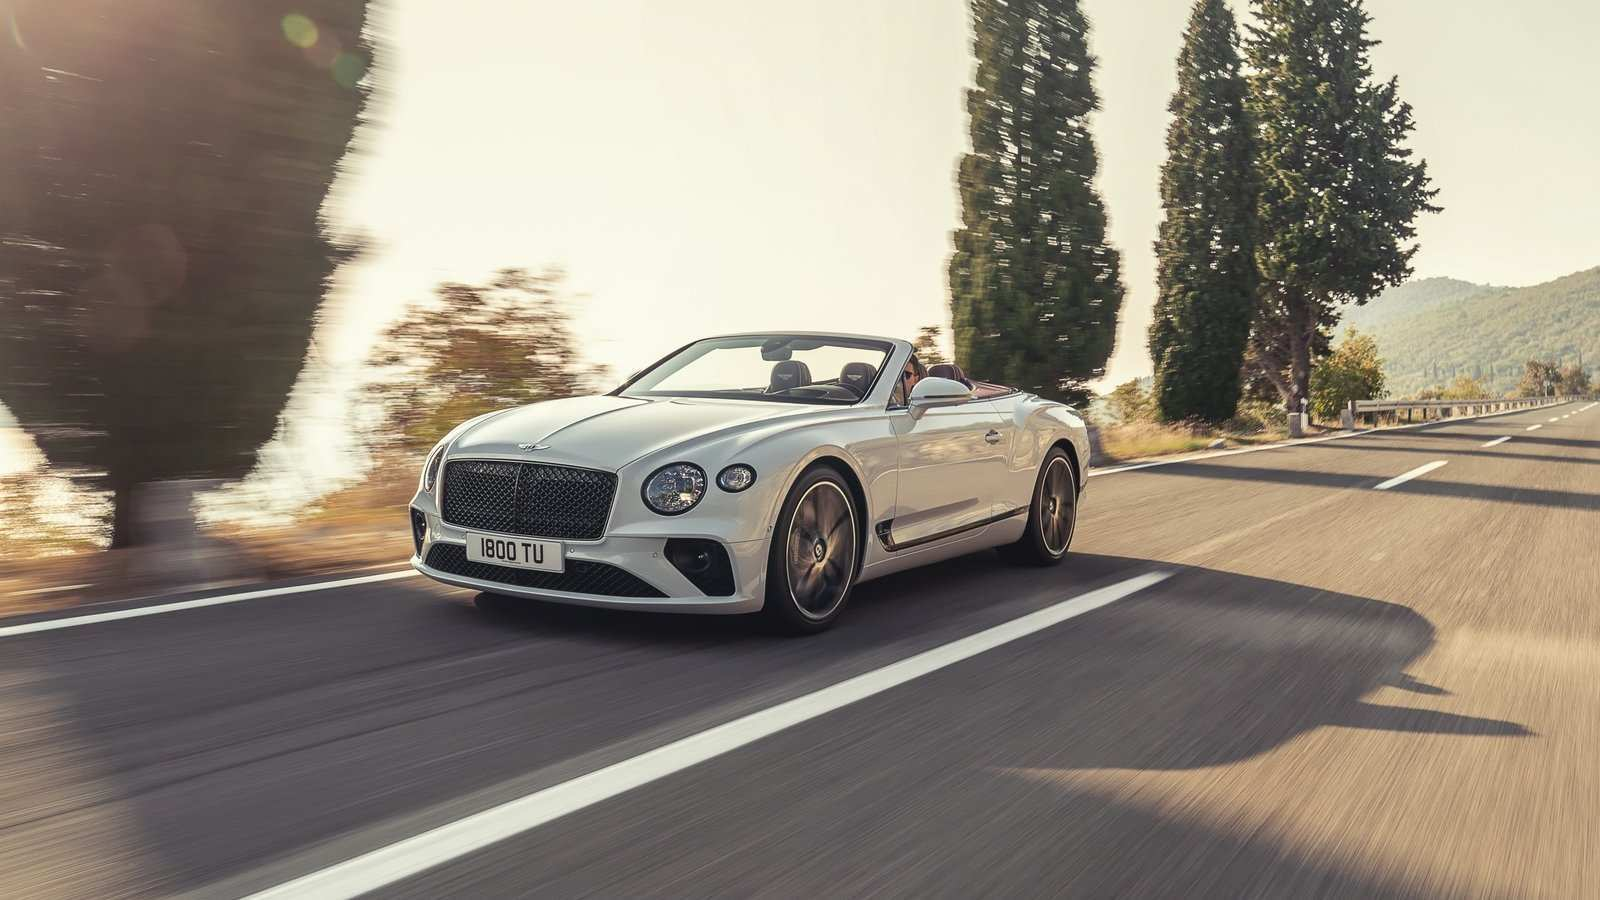 55 All New 2020 Bentley Continental GT Concept by 2020 Bentley Continental GT